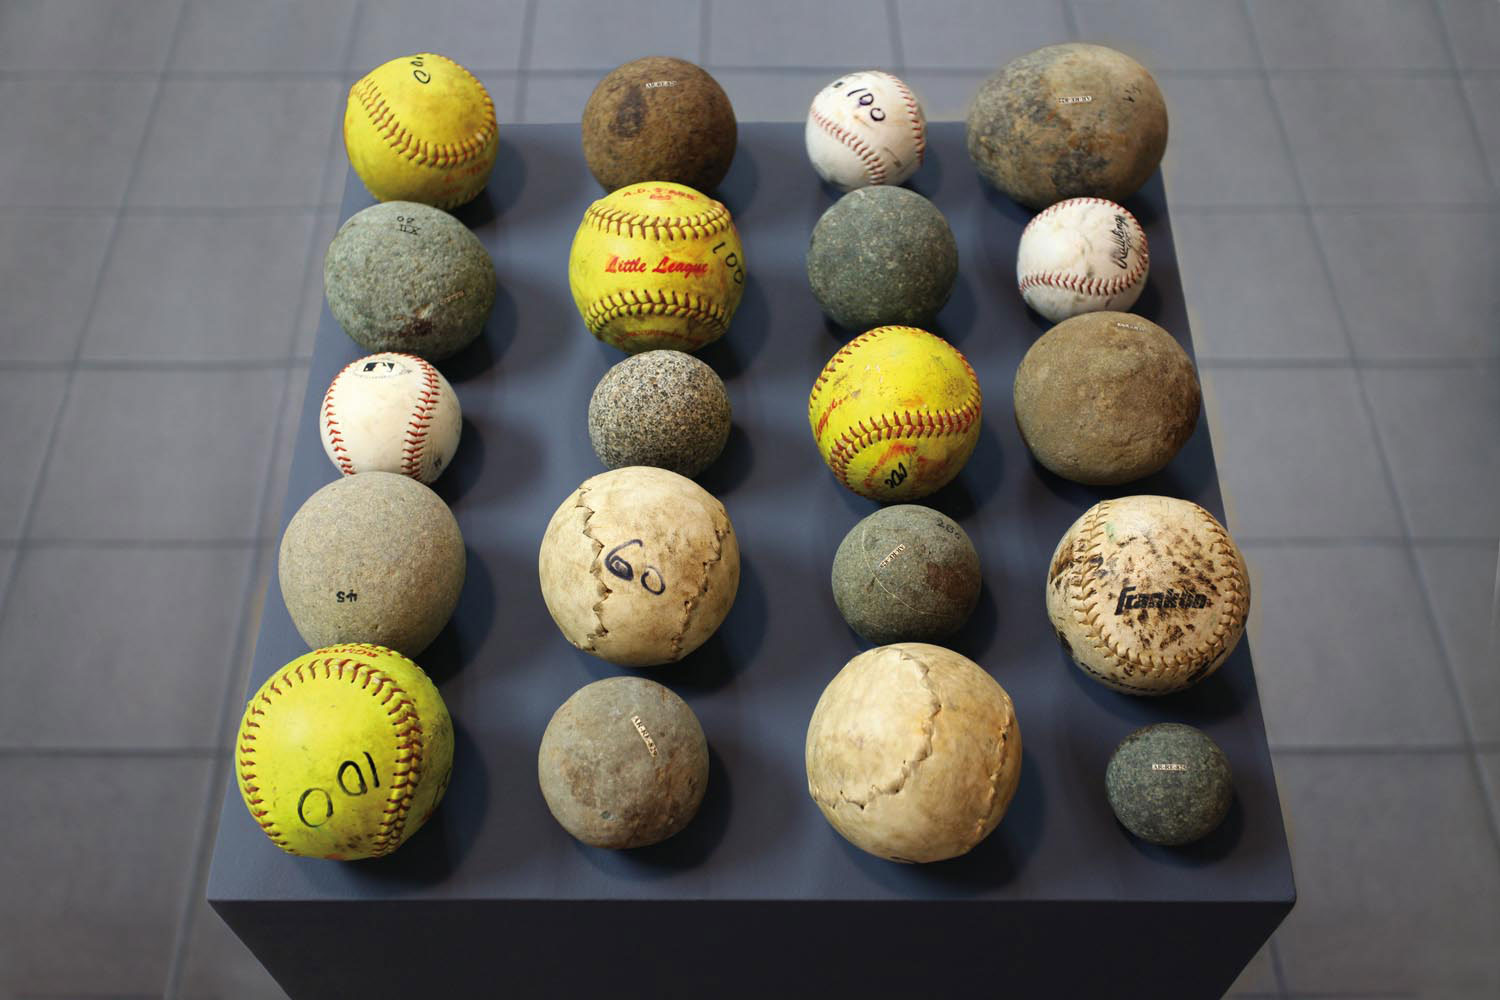 Untitled, Taino lithic crushing tools, softballs, baseballs (2016; collection of Centro León). Made during a residency in the Dominican Republic, this installation juxtaposes prehistoric artefacts with used baseballs that hint at historic US cultural dom